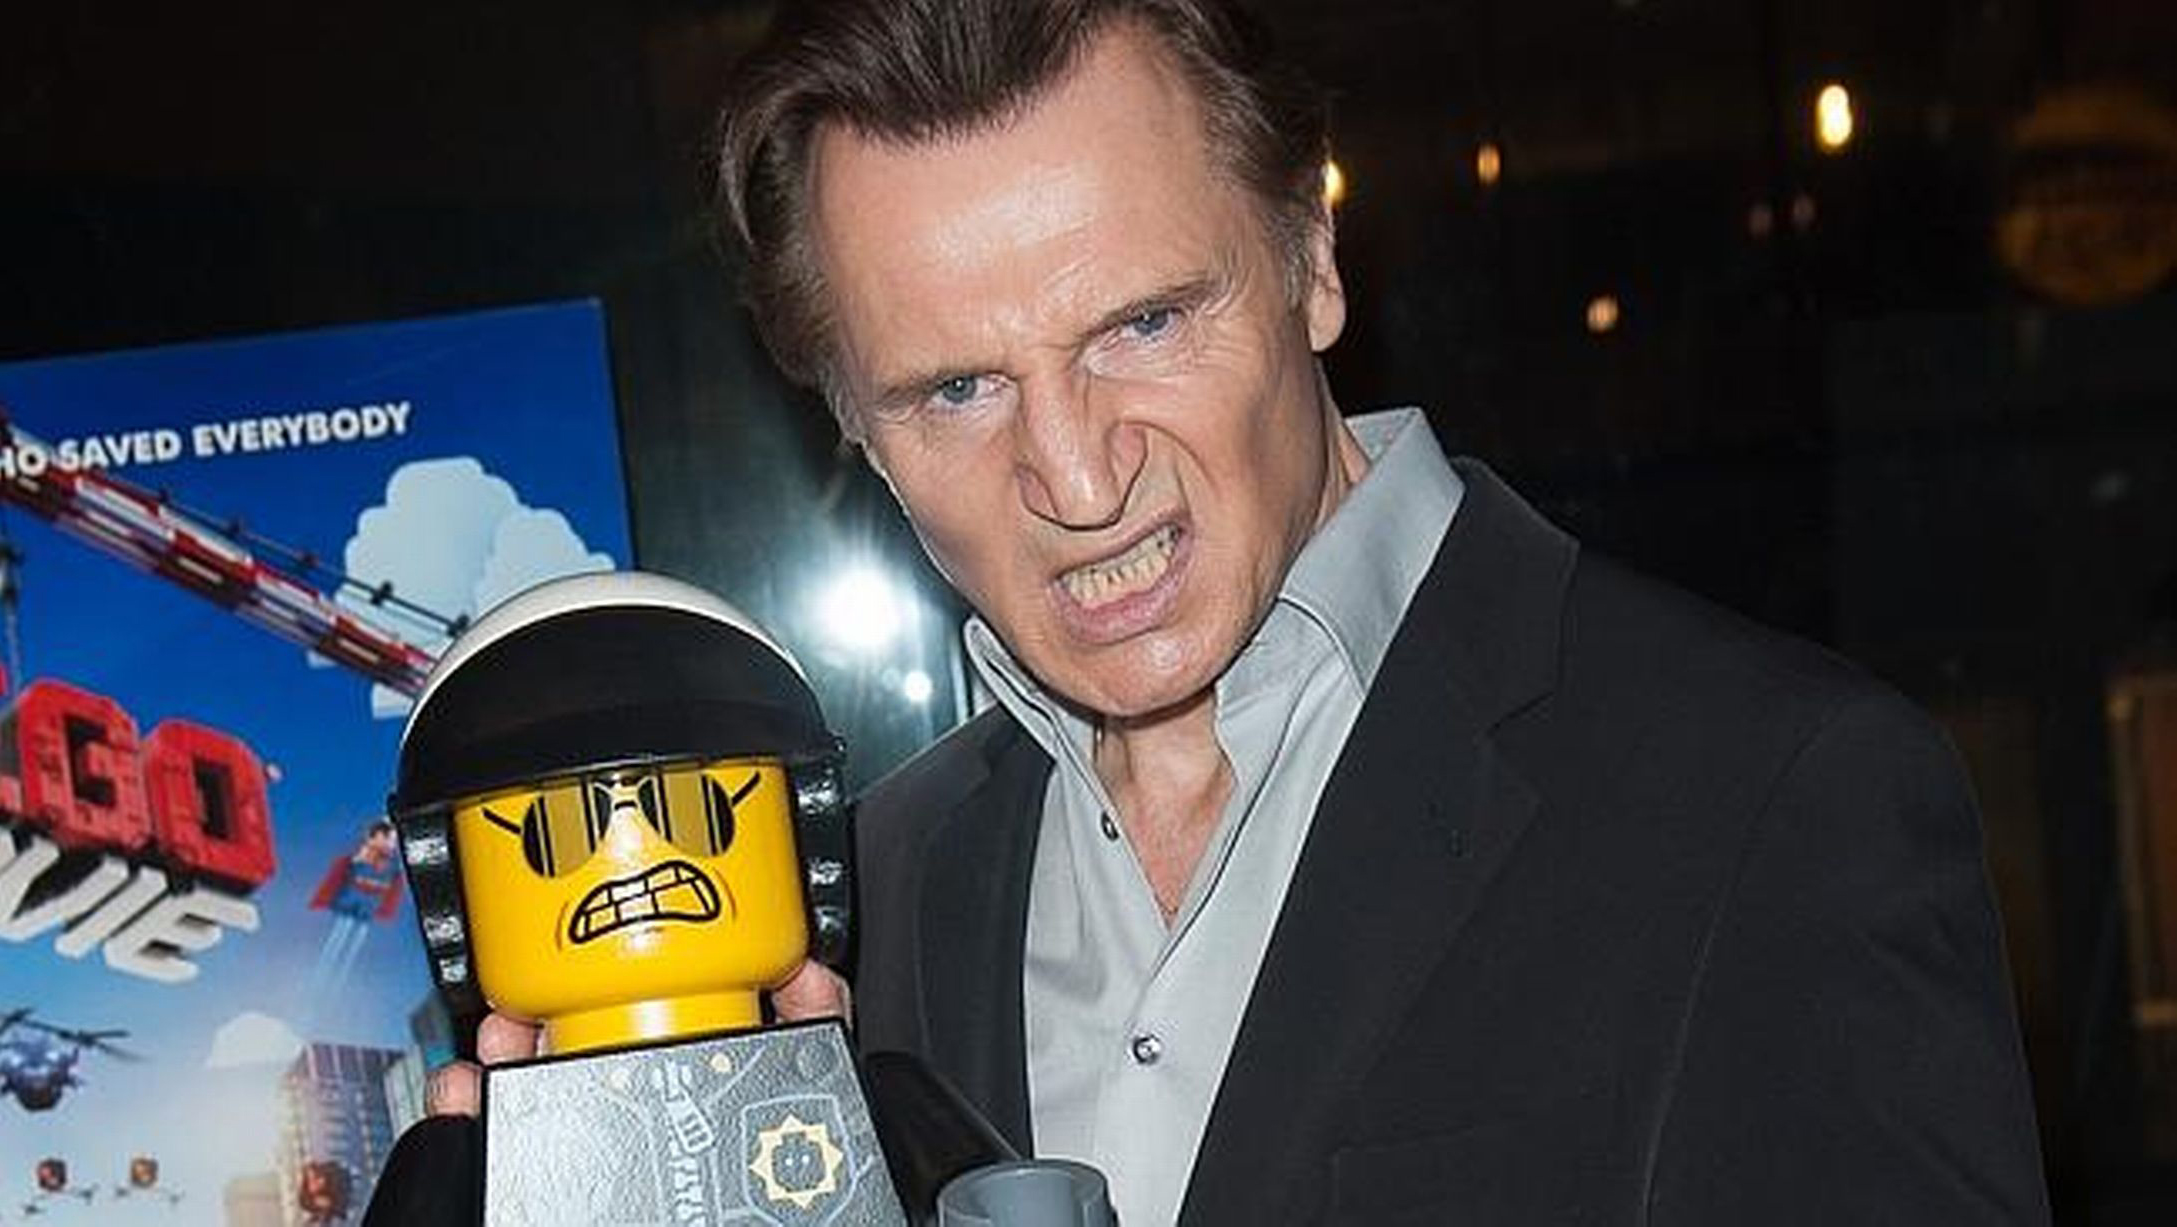 Liam Neeson's old AF: trades in certain set of skills for Depends screenshot